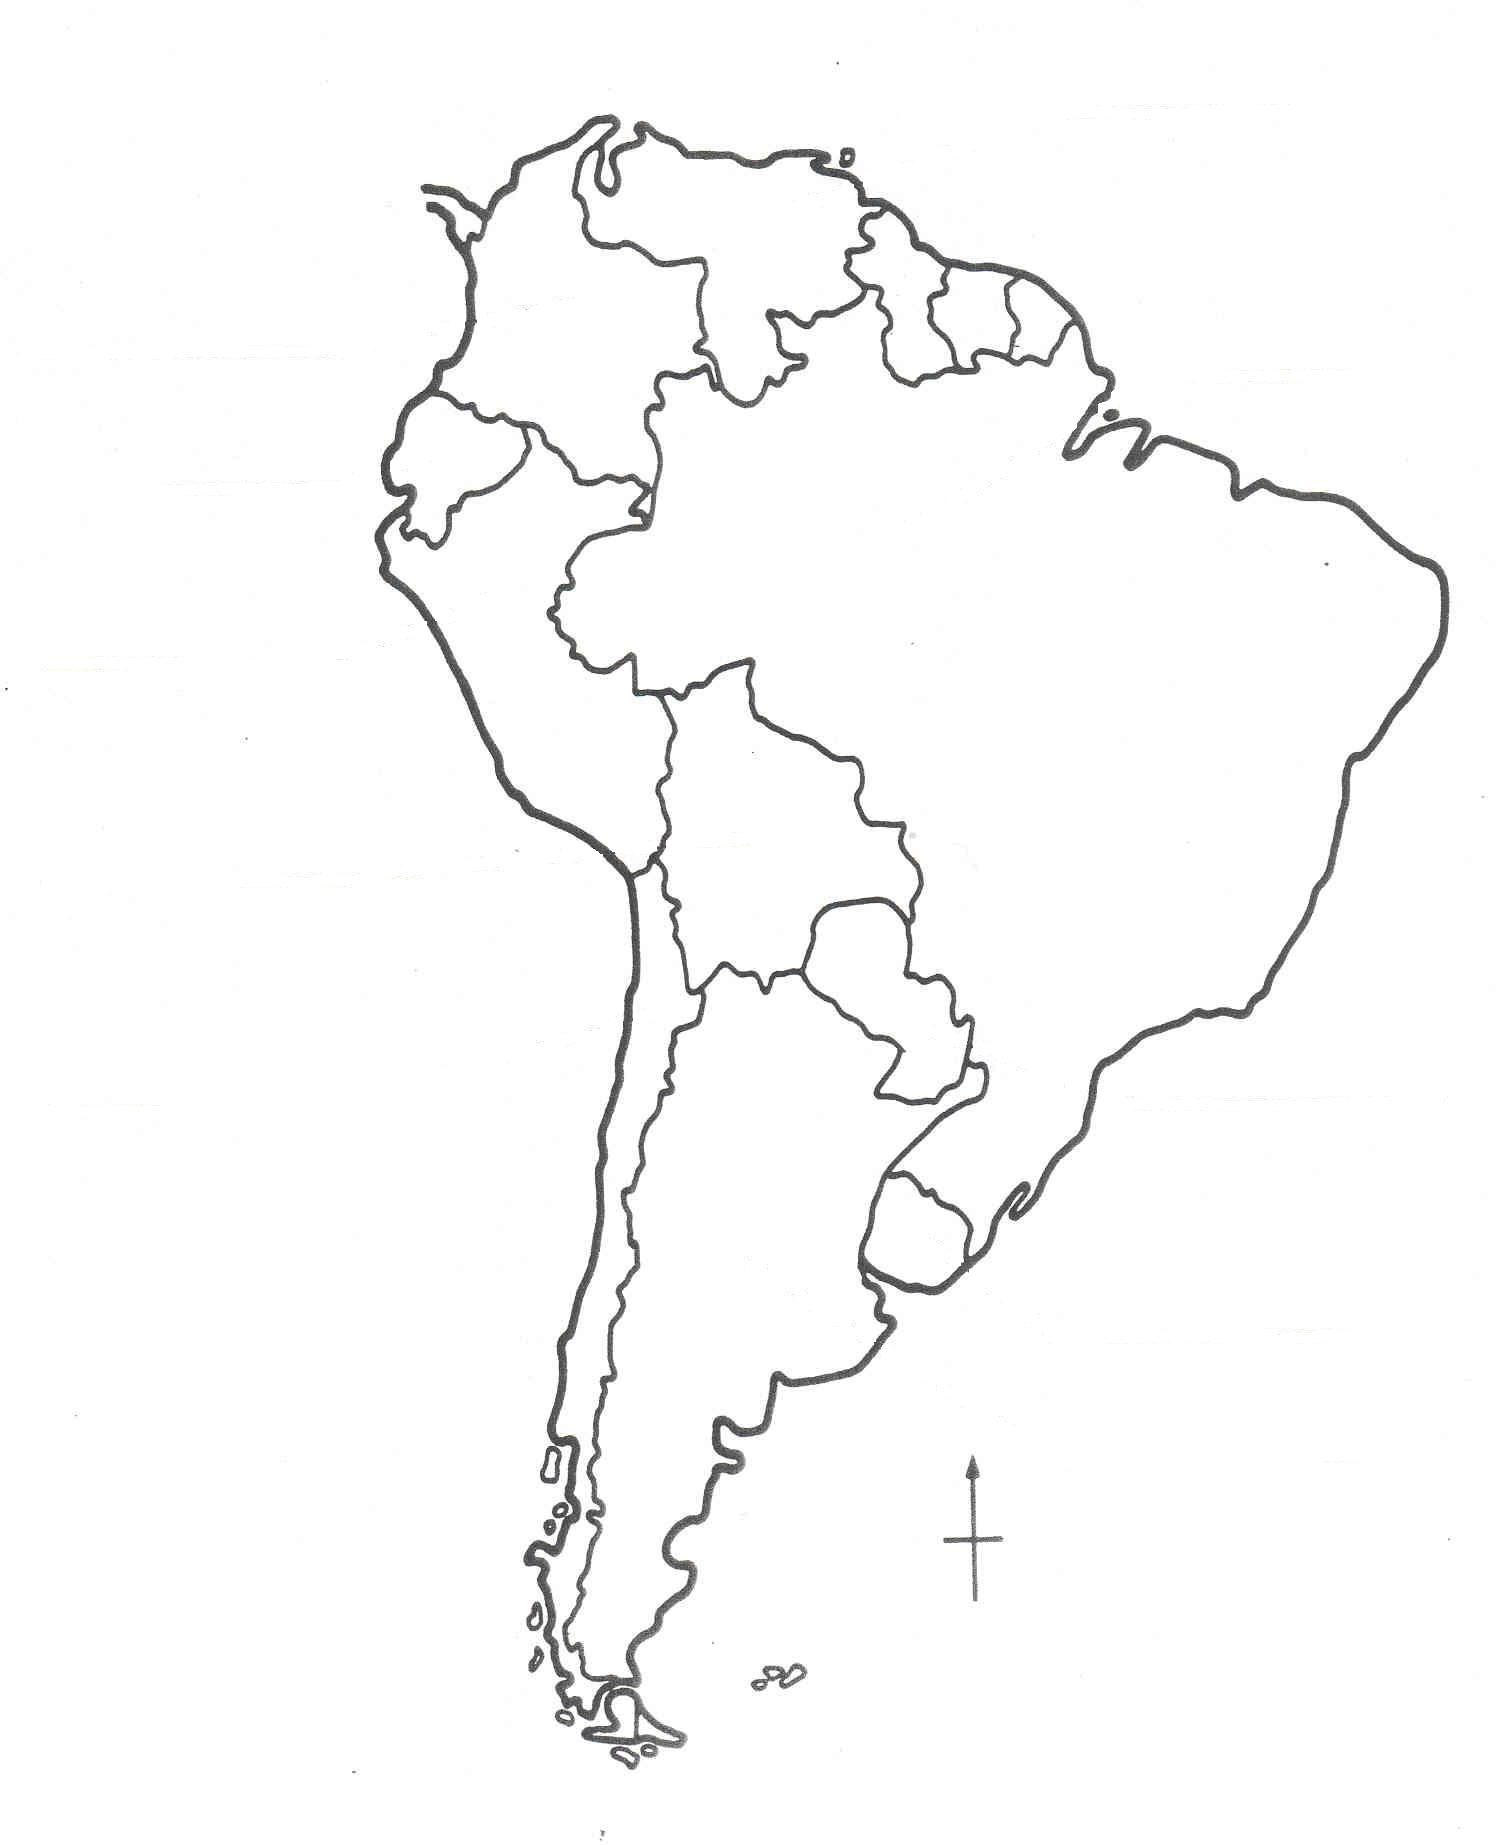 Blank Political Map Of Latin America